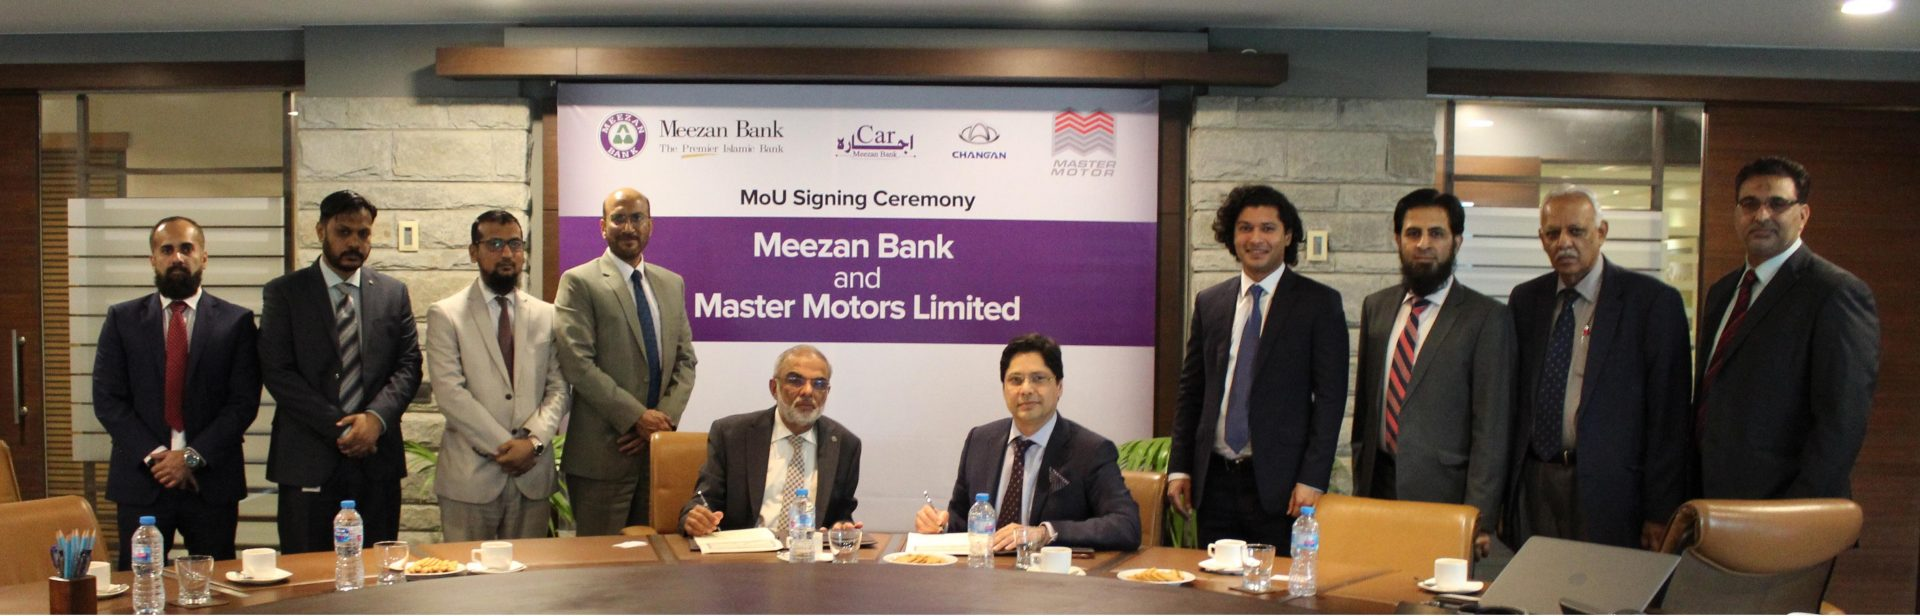 Meezan Bank and Master Motors sign a MoU for Promoting